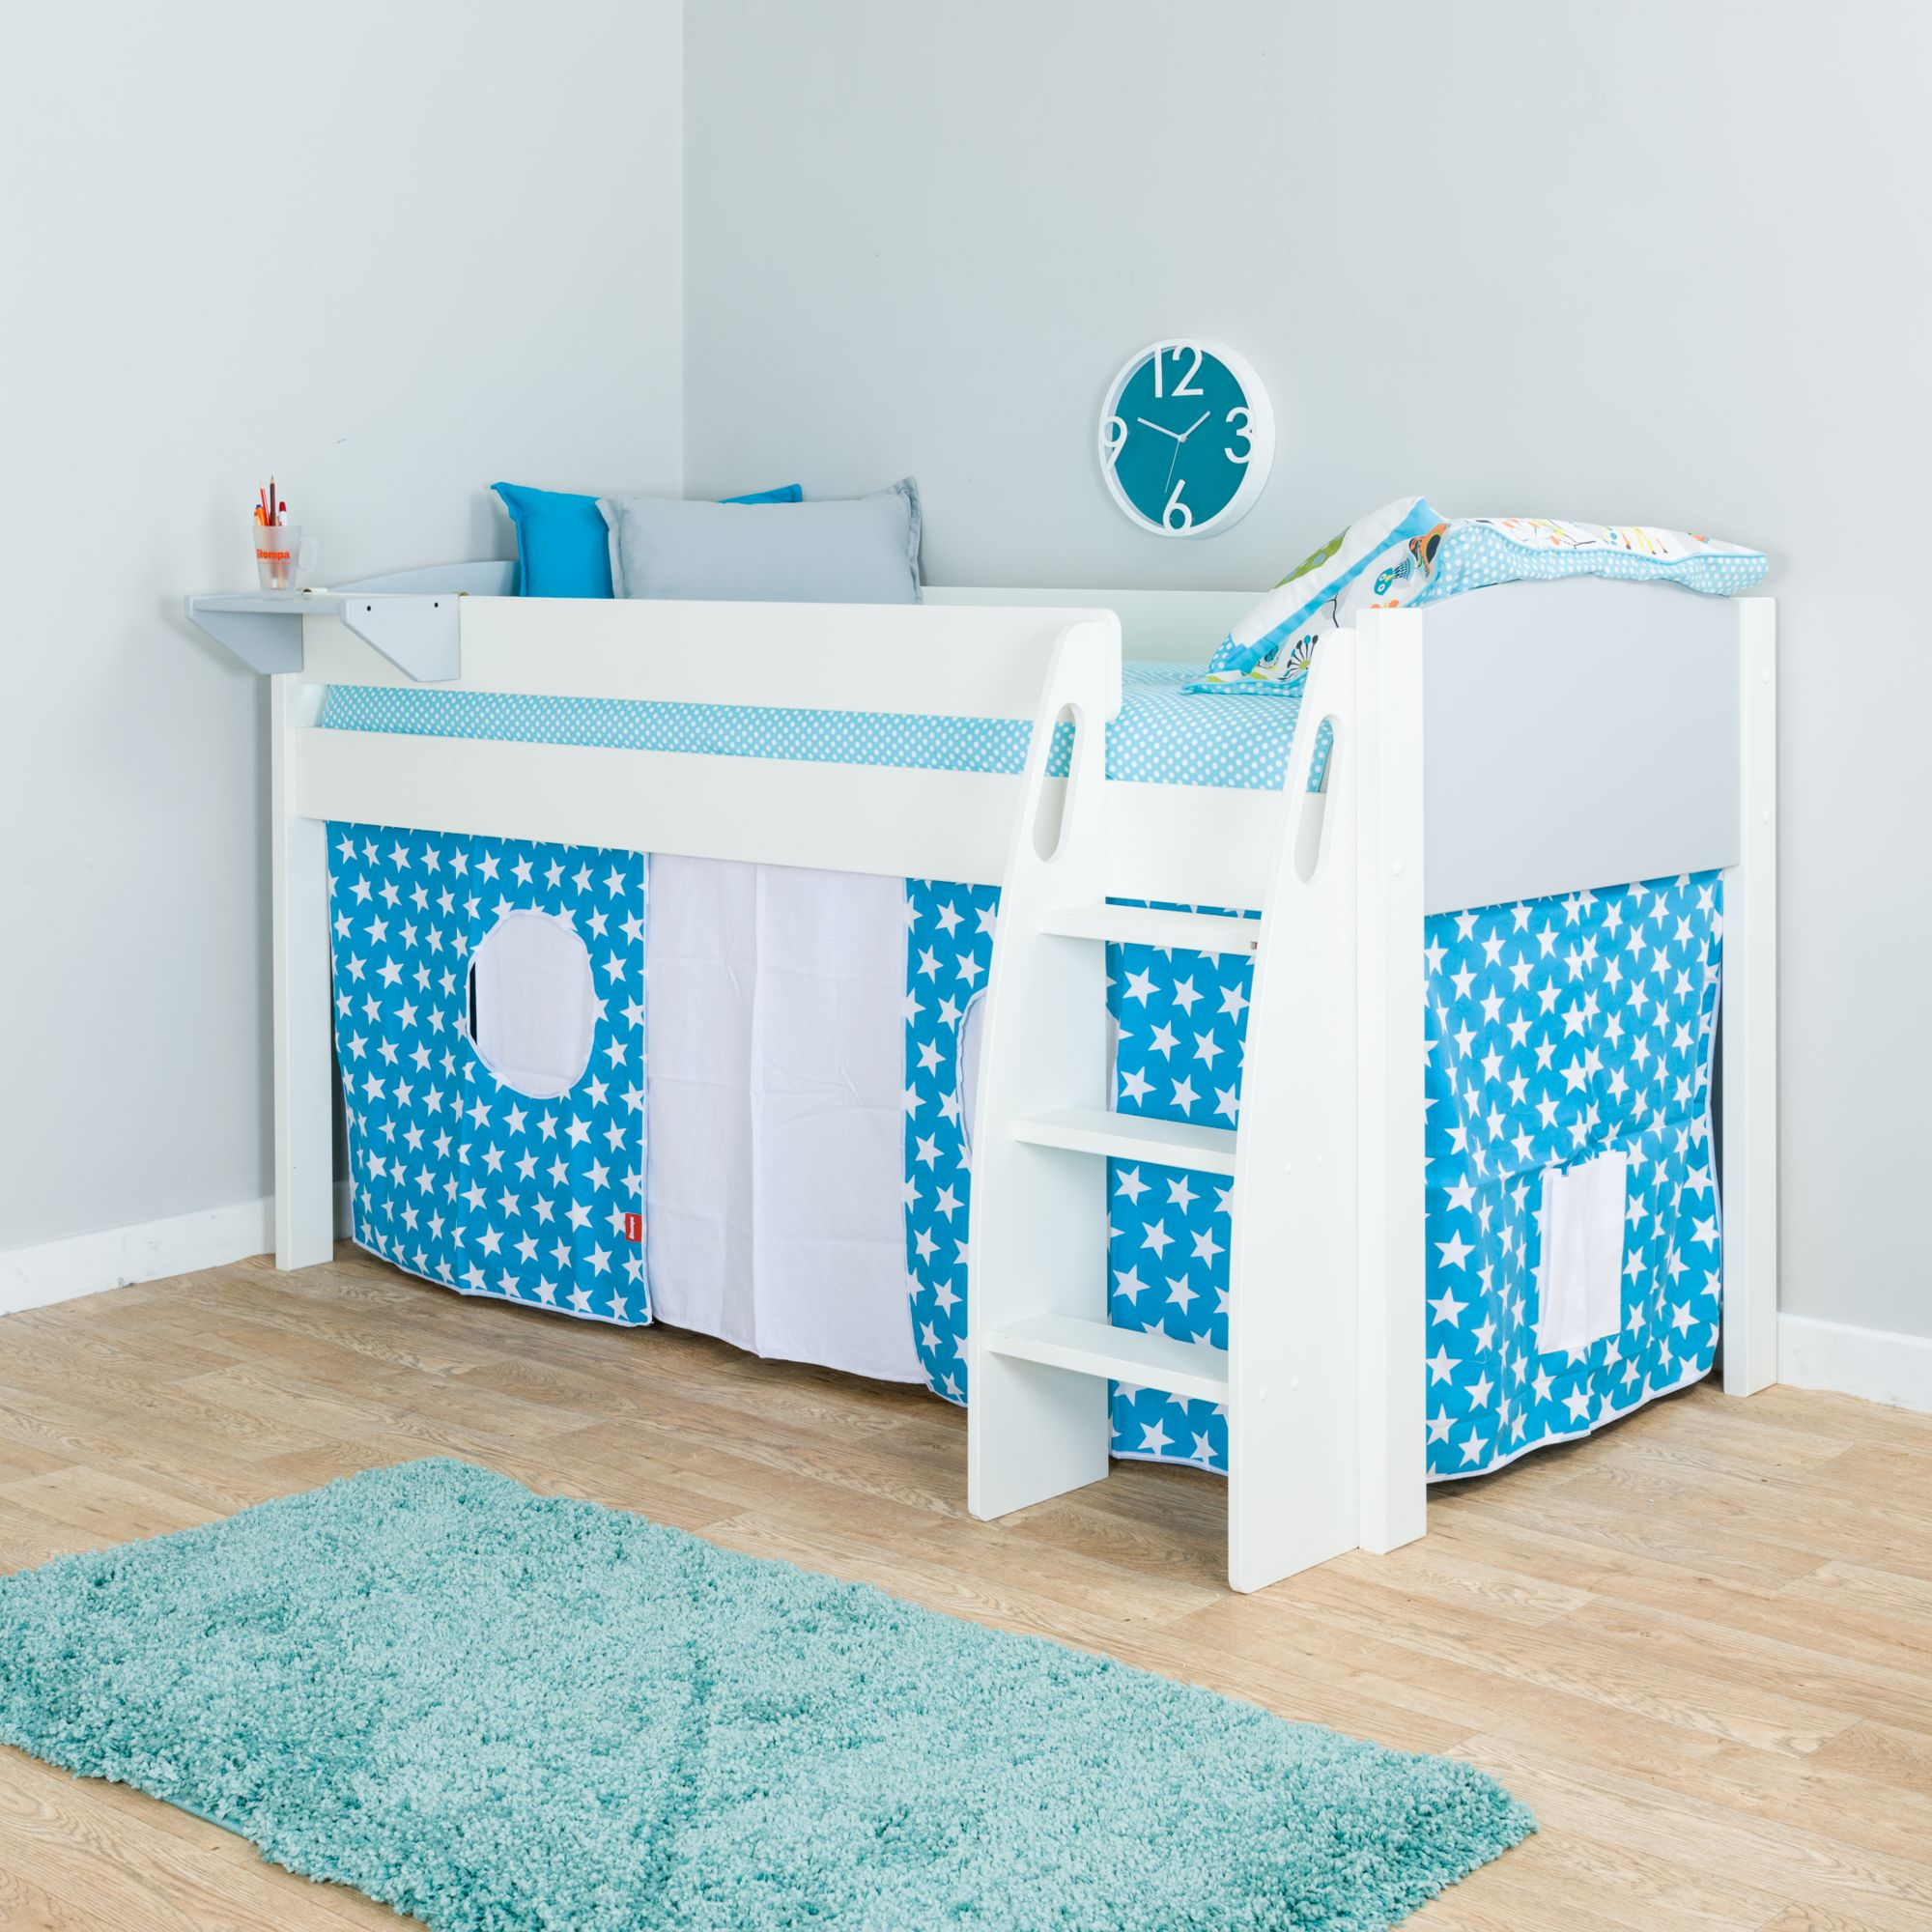 Stompa Uno S Plus Mid Sleeper Bed With Grey Headboard And Star Print Tent At John Lewis Partners